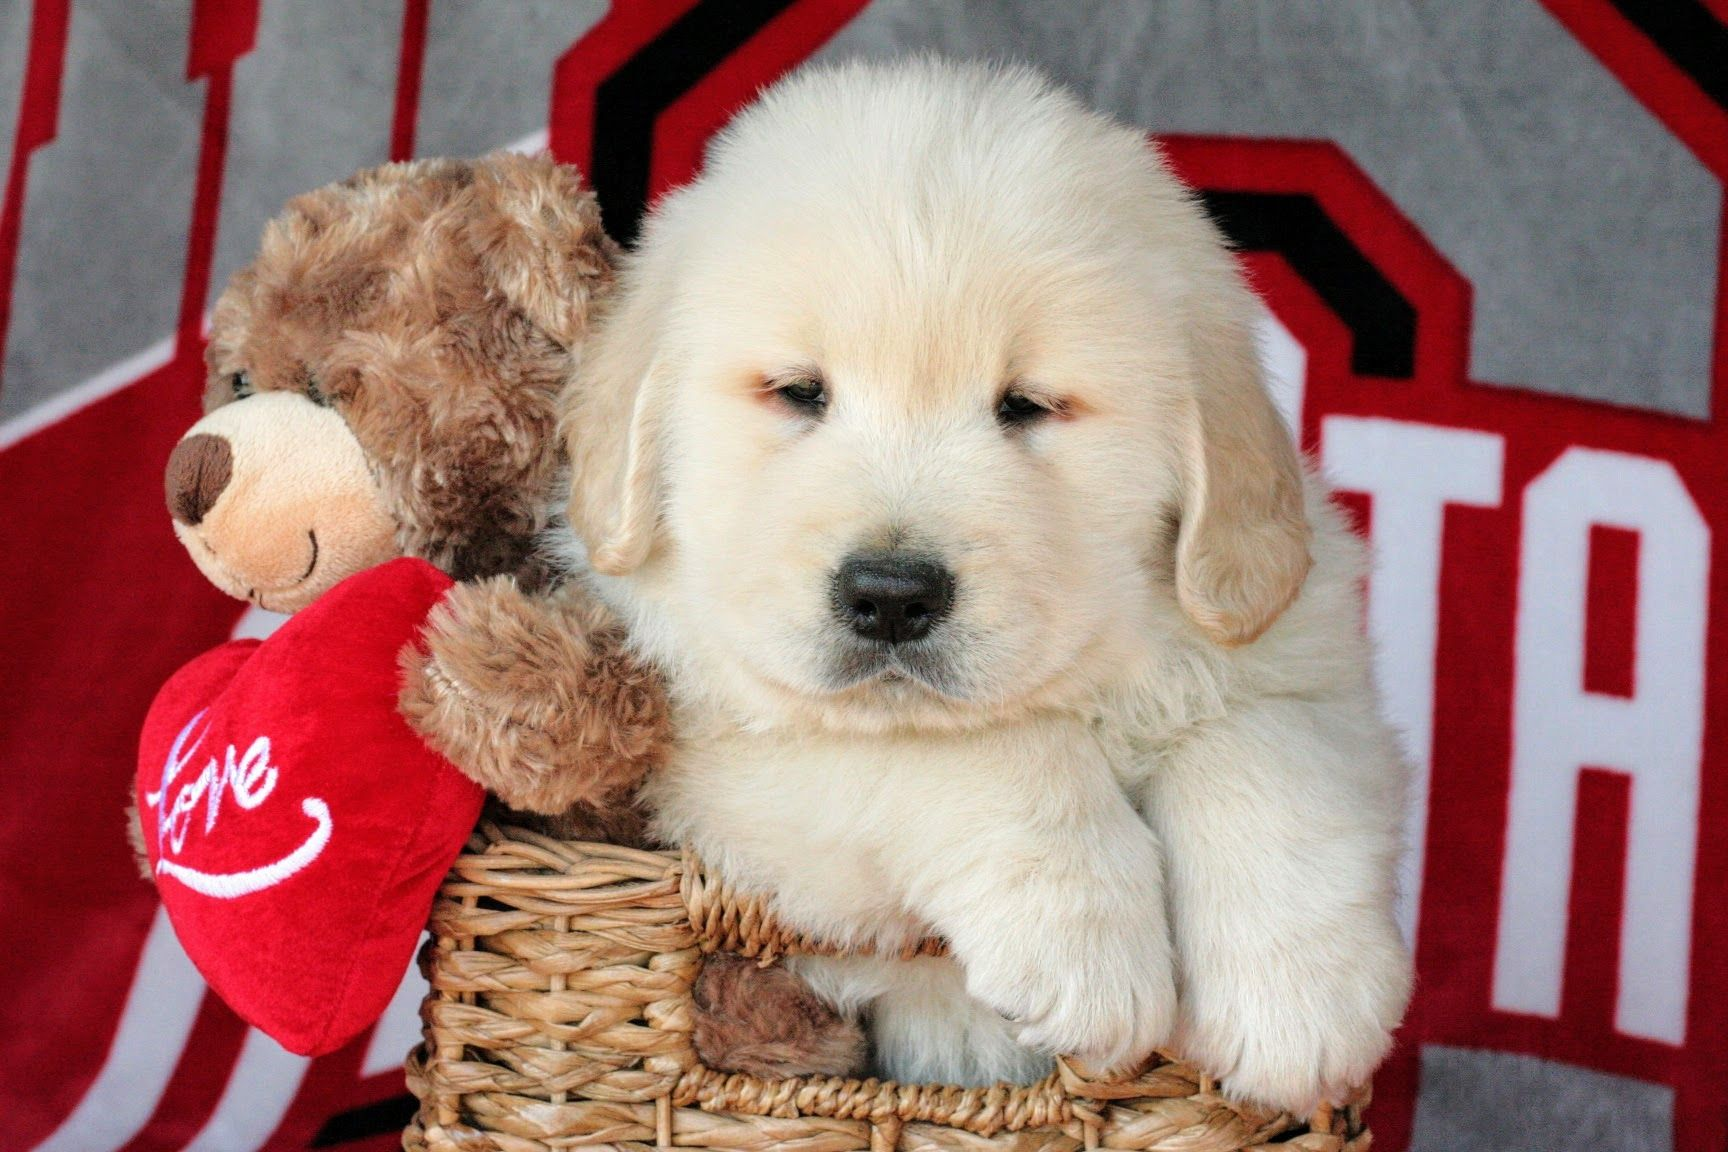 Lebron Golden Retriever Puppies For Sale in Ohio